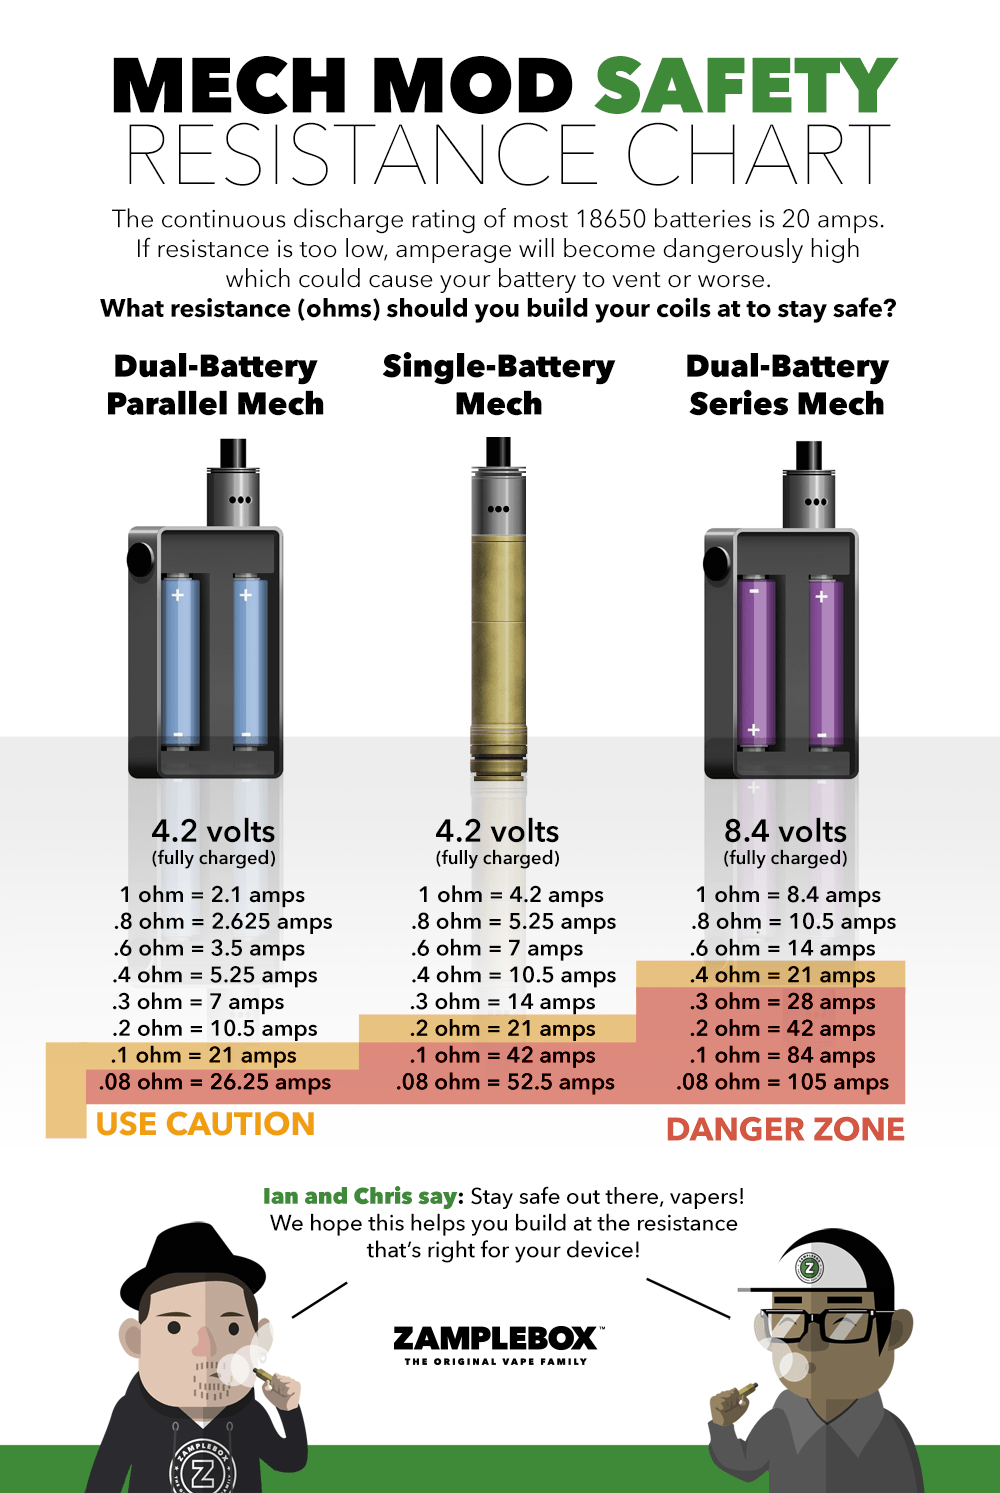 https://www.zamplebox.com/content/images/site/battery-safety/mech-mod-safety-resistance-buildchart.png